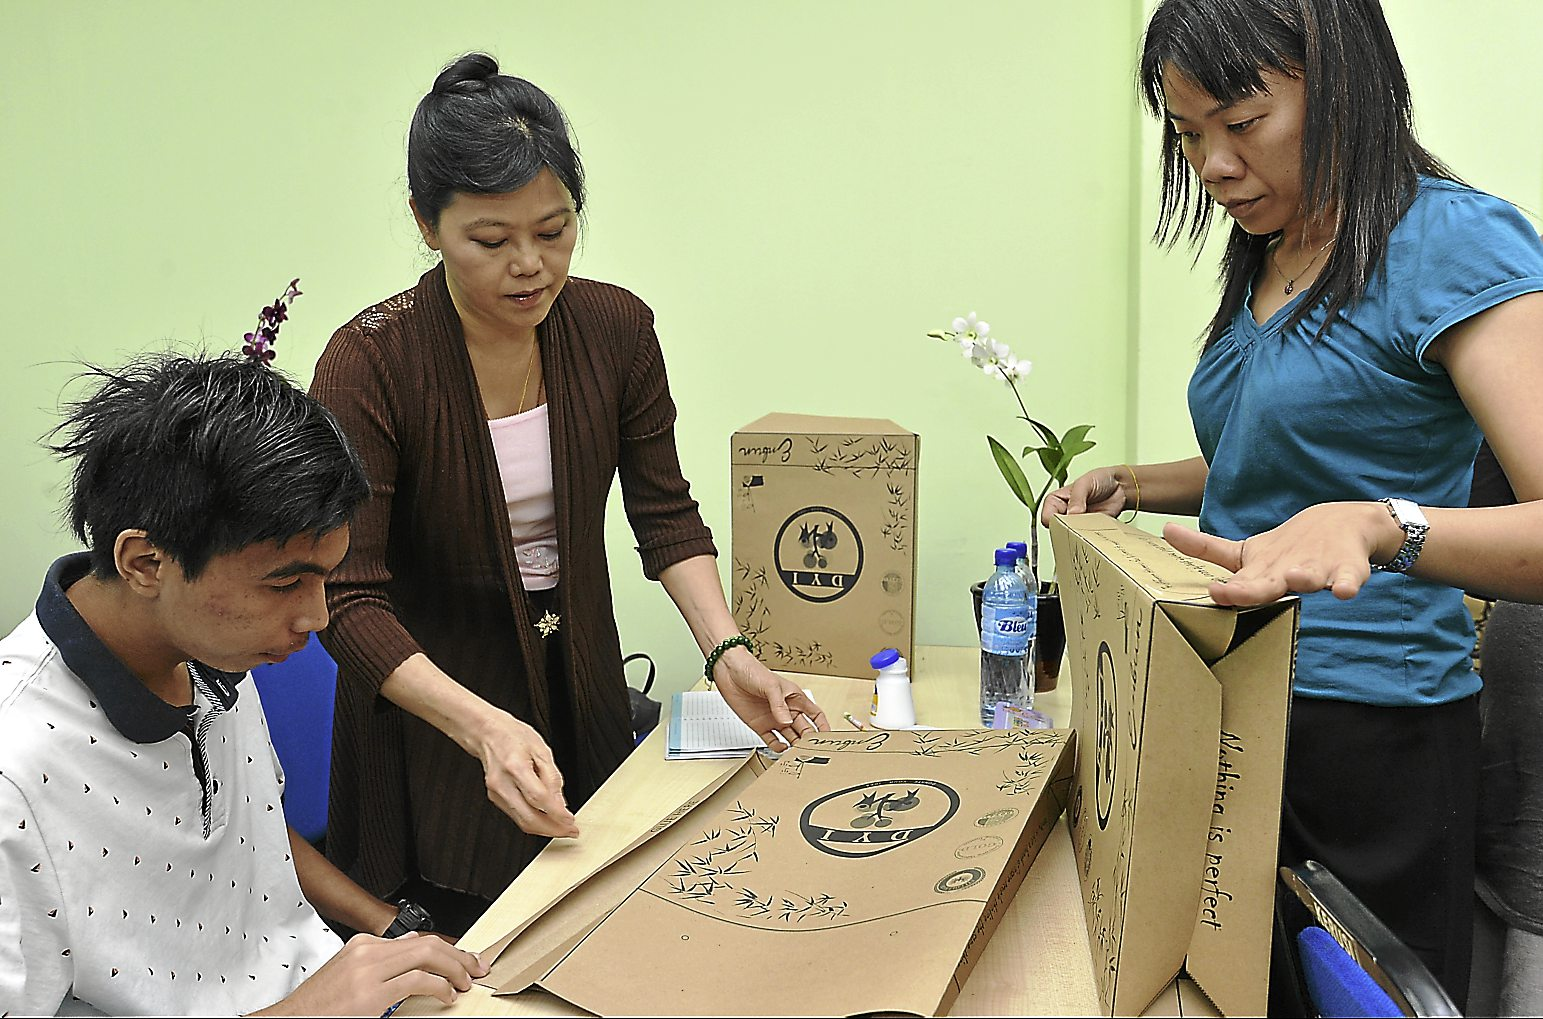 Some of the participants getting their hands on in creating a paper bag during the Donate Your Idea Workshop at  Skills Technical Innovation College, Kuala Lumpur on July 8.